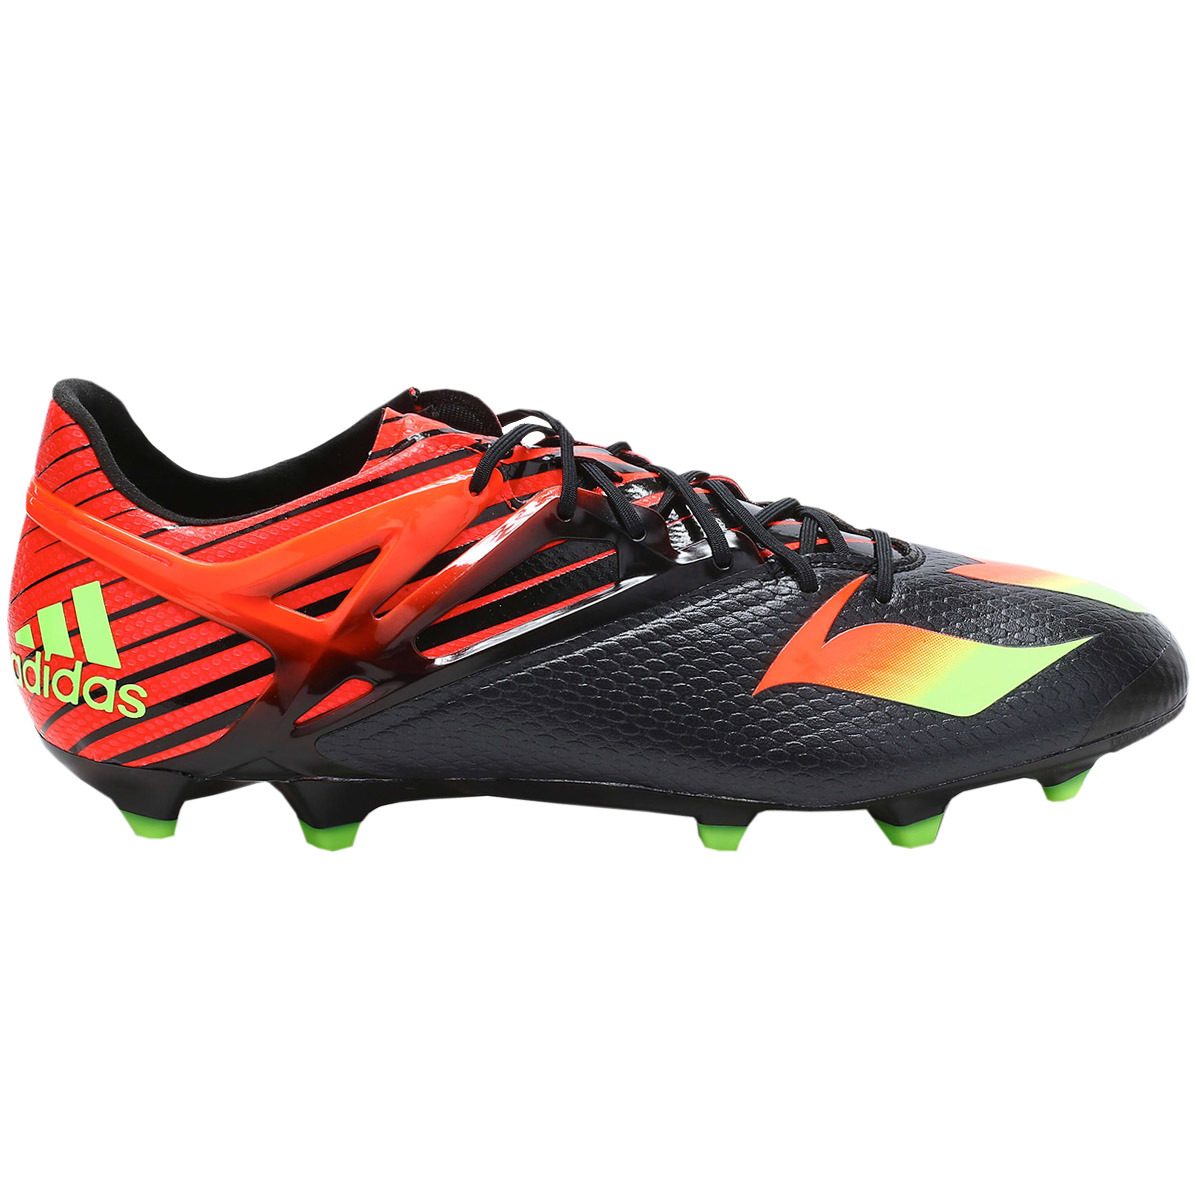 25f5c7313df Adidas Football Boots Messi 15.1 Fg Ag Men s Black-Red Studs New Fg ...